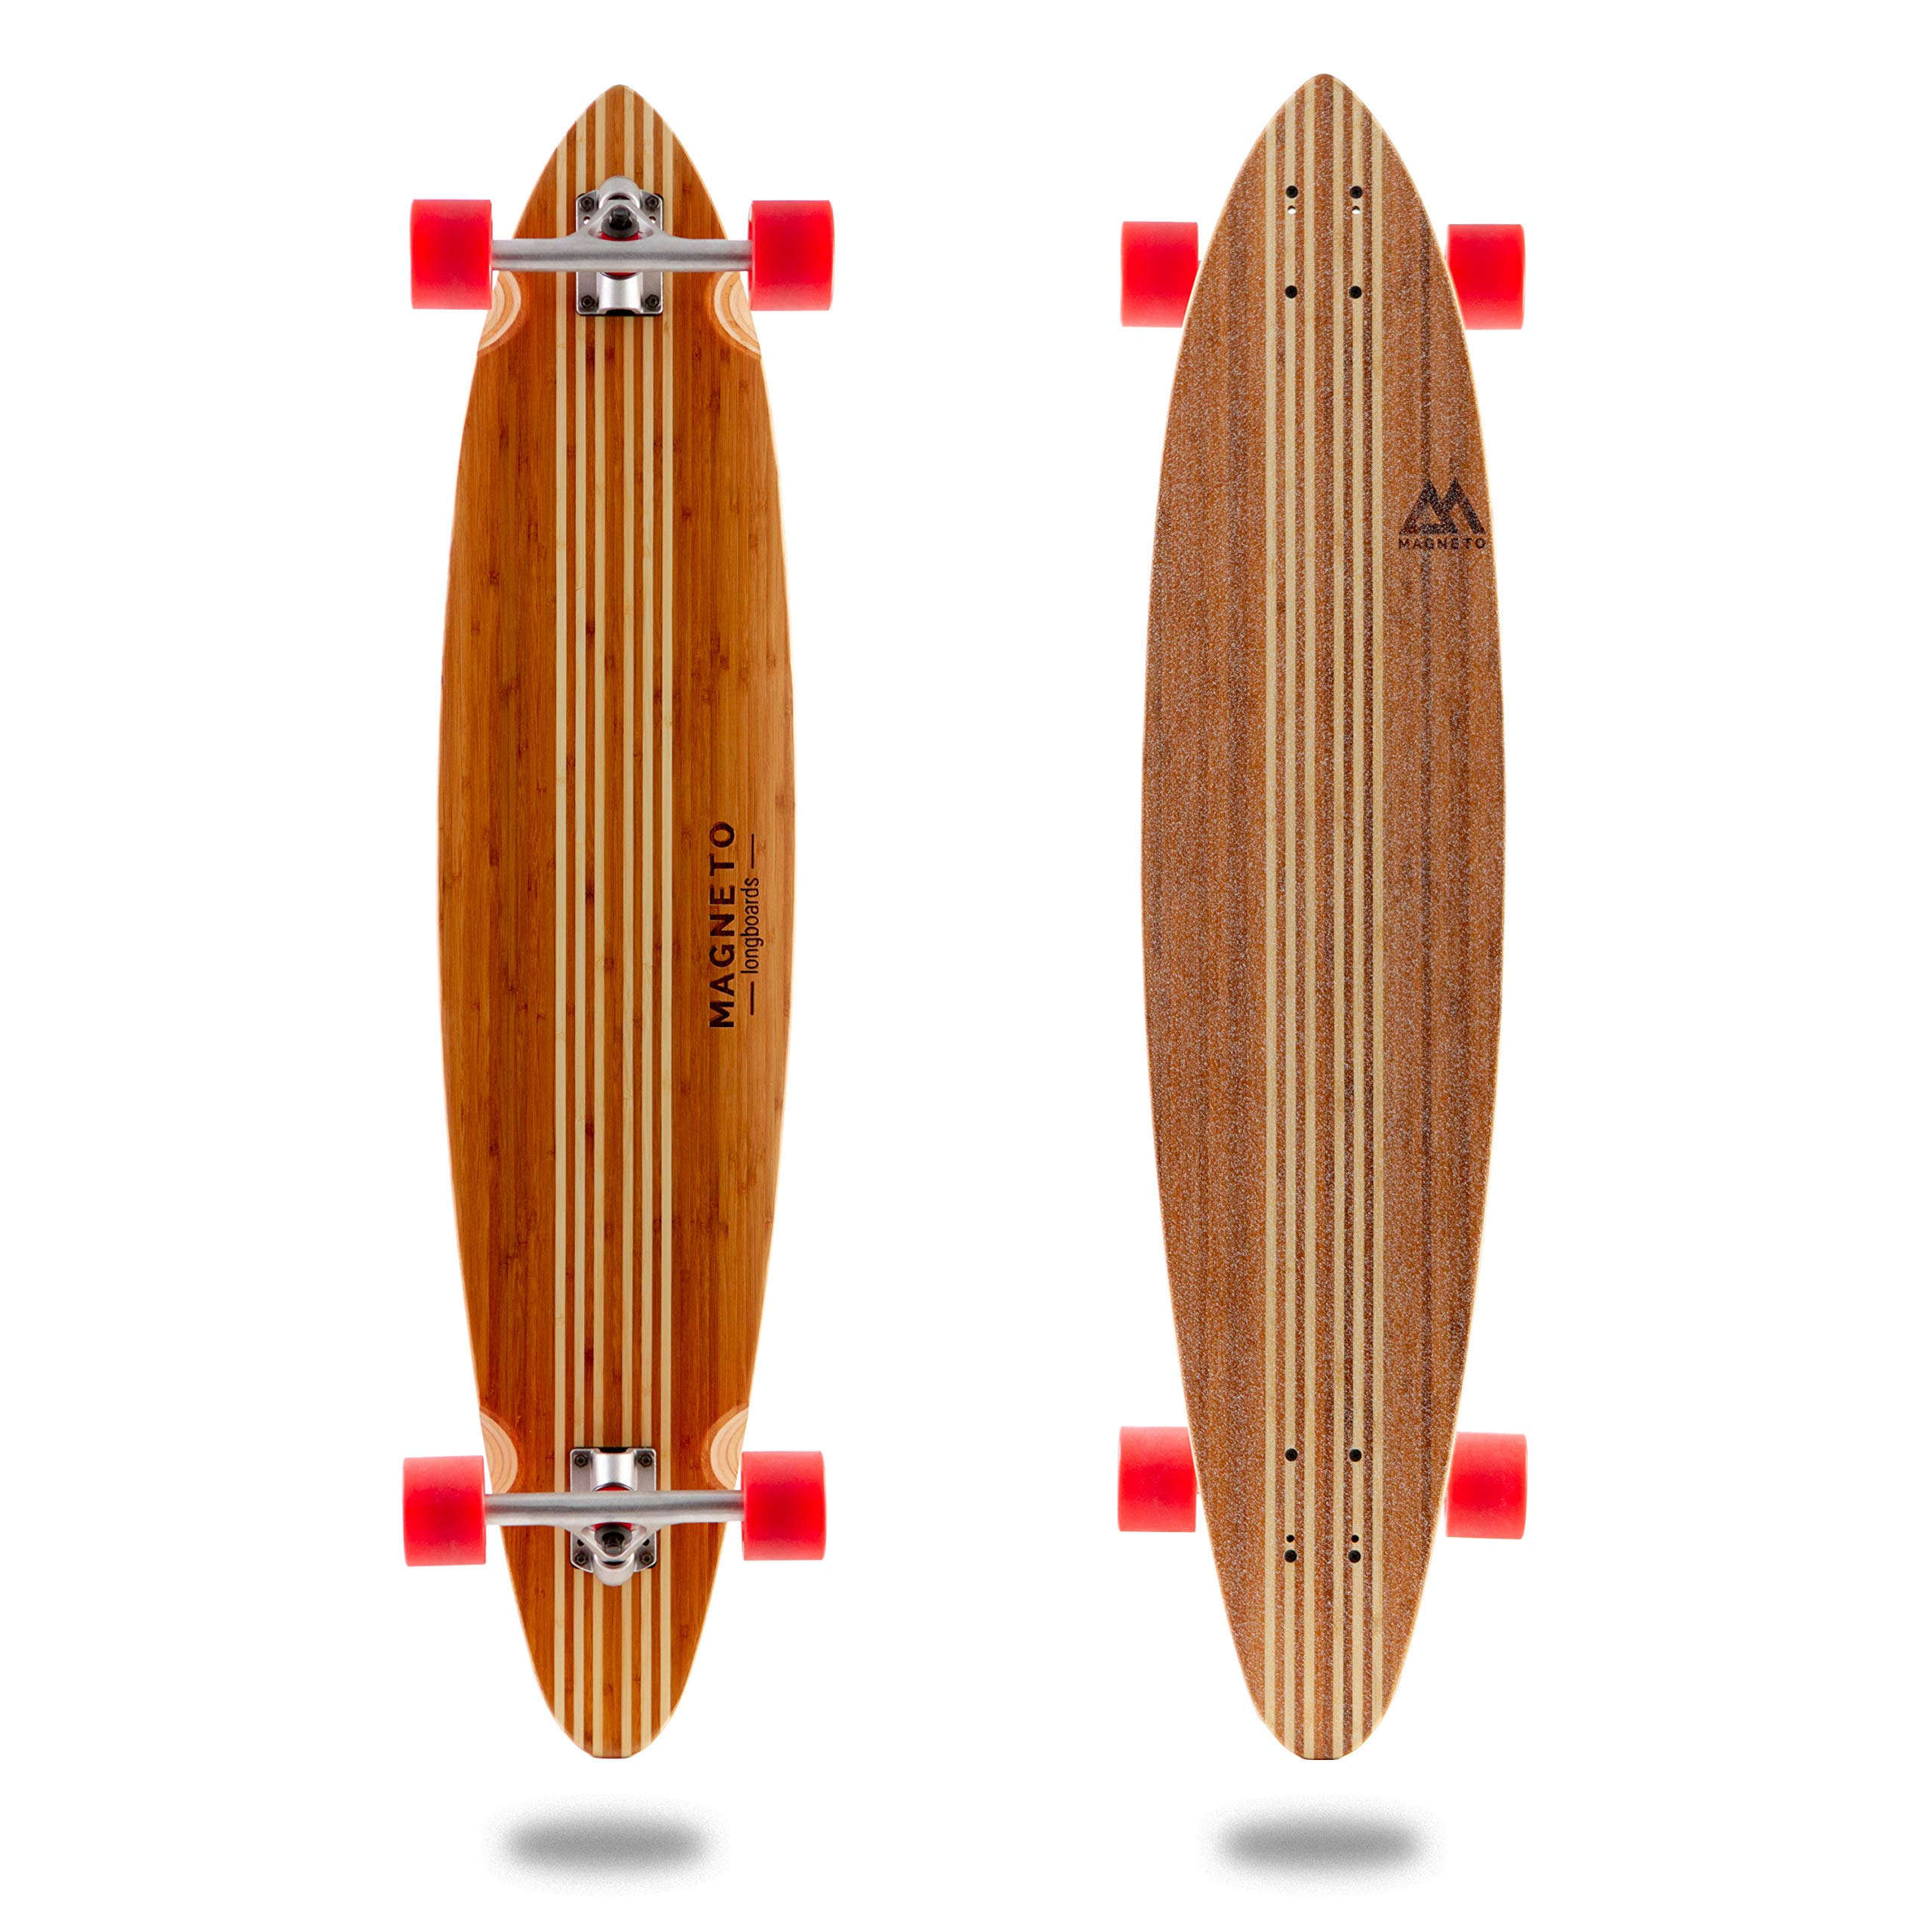 Hana Longboard Collection | 42 inch Longboard Skateboards | Bamboo with Hard Maple Core | Cruising, Carving, Dancing, Freestyle (Pintail) by Magneto (Image #1)